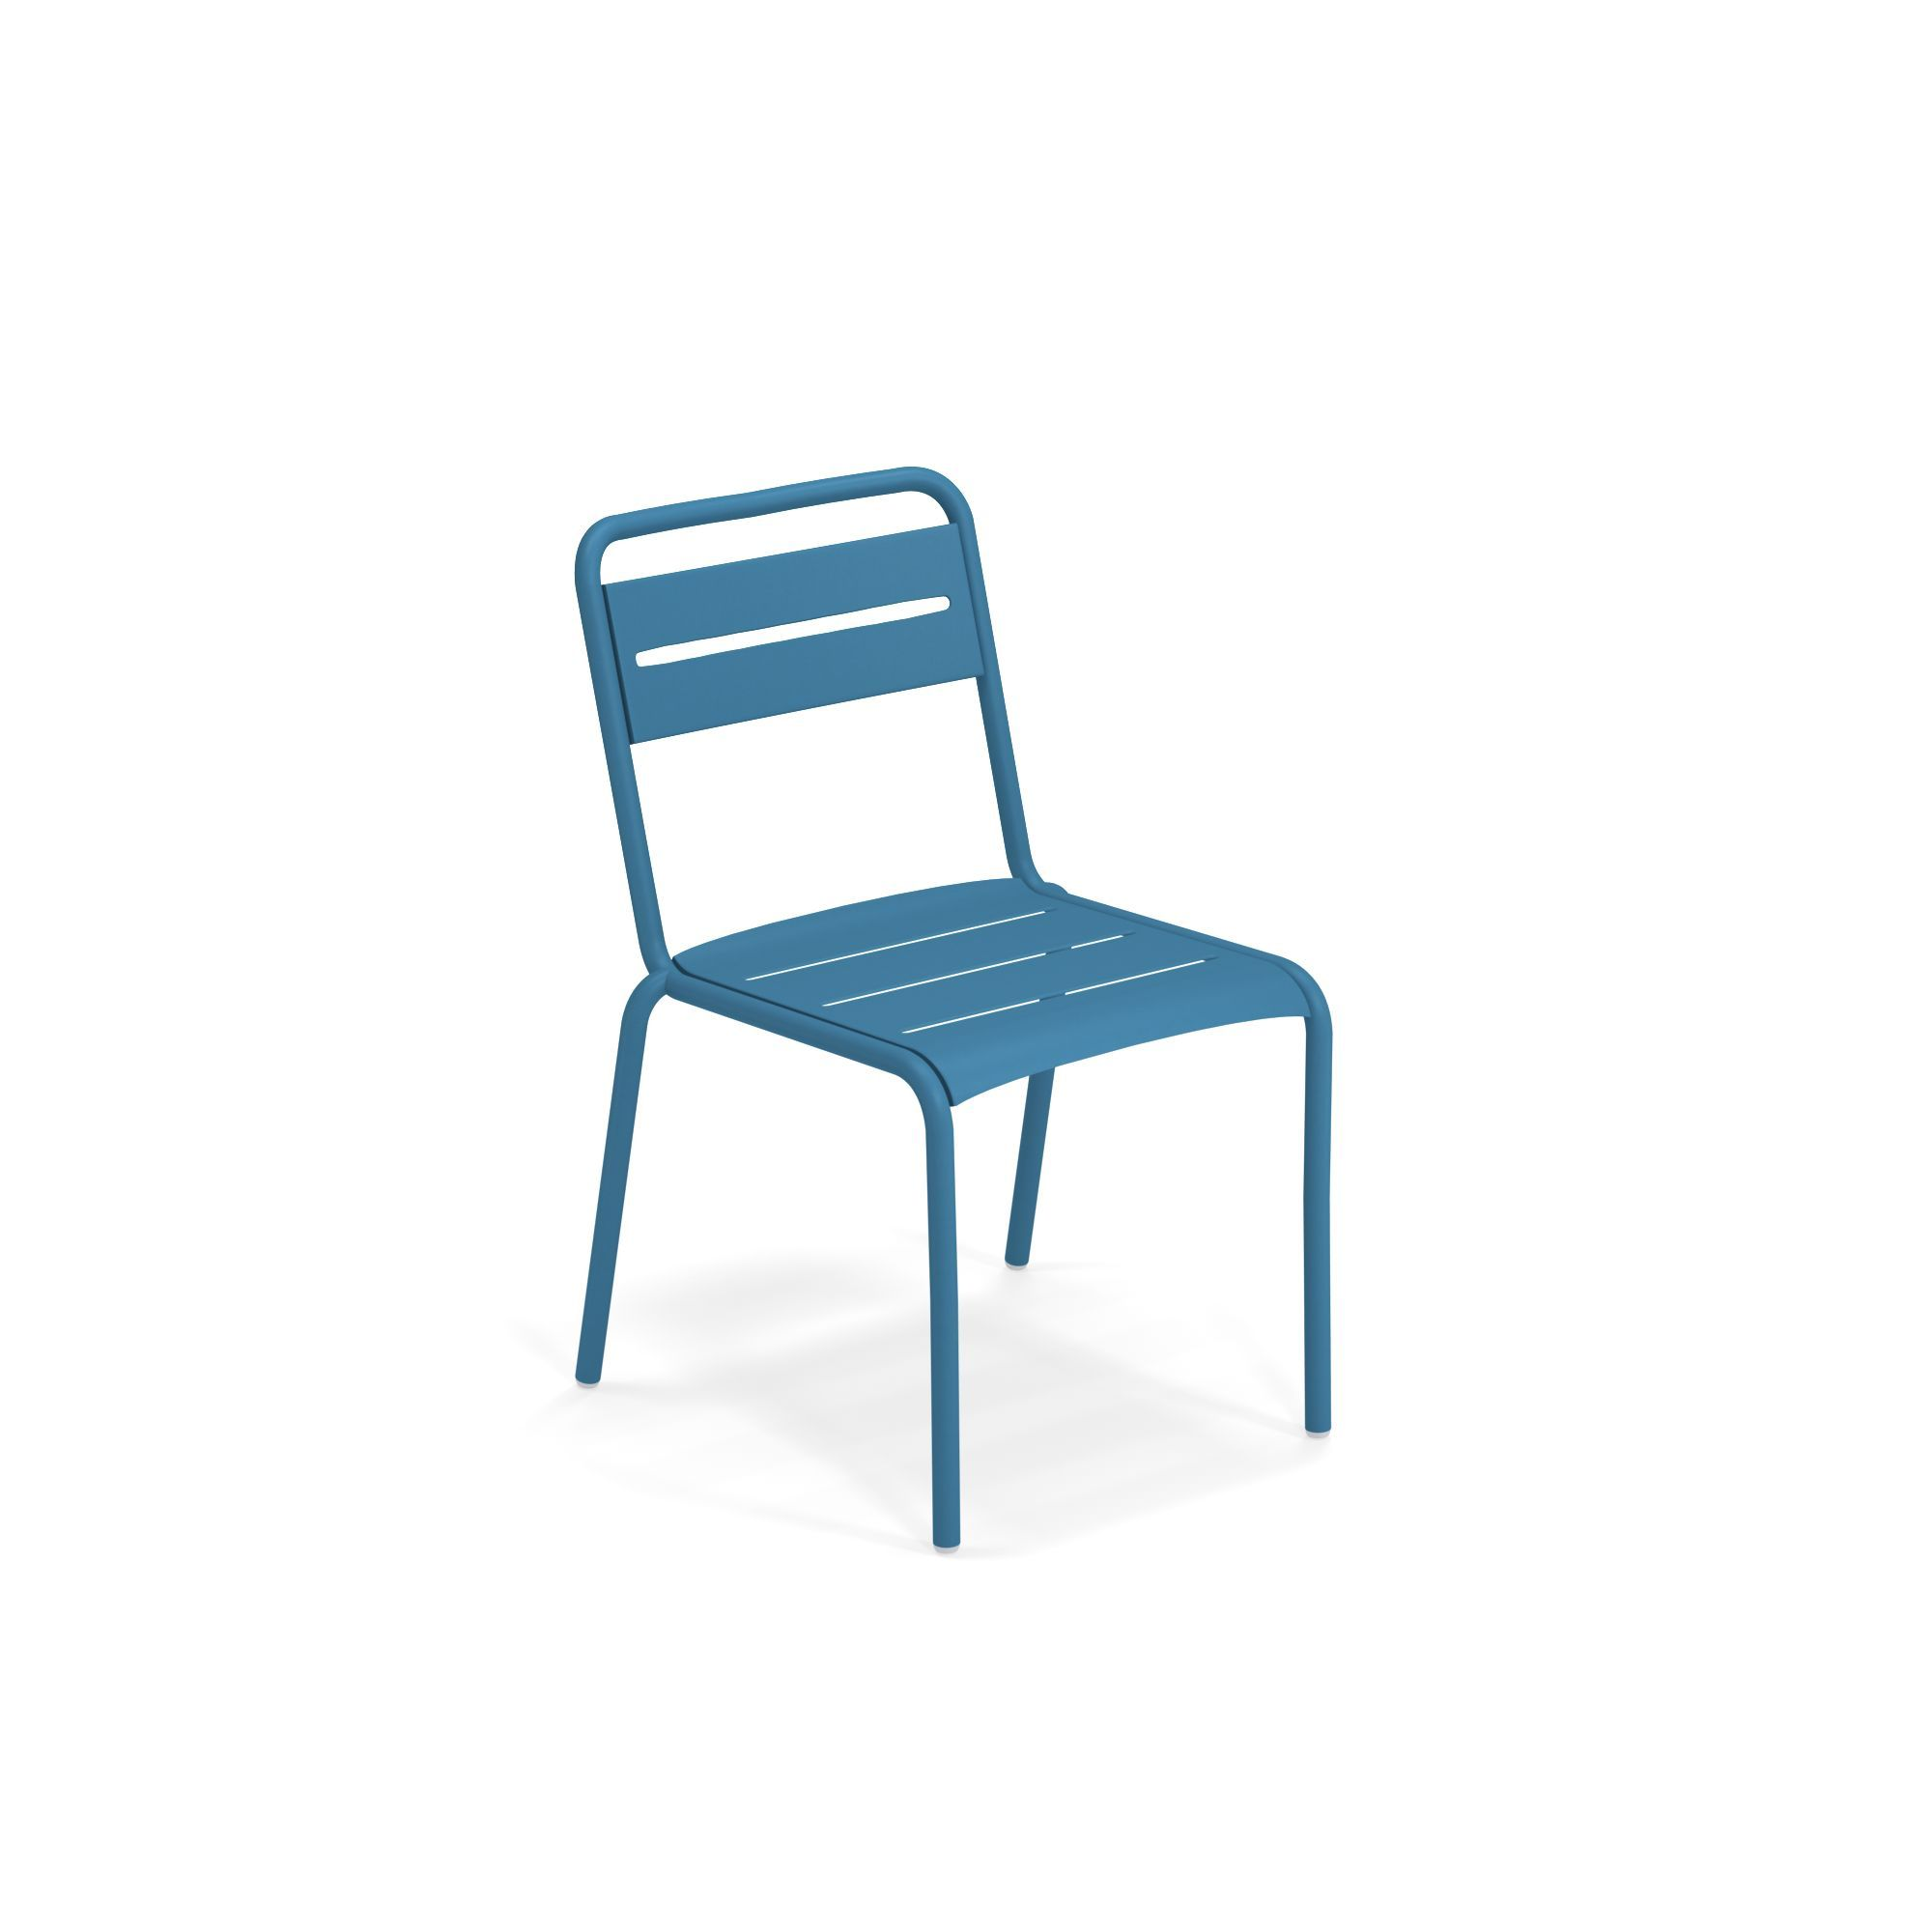 emuamericas, llc 161-61 chair, side, stacking, outdoor